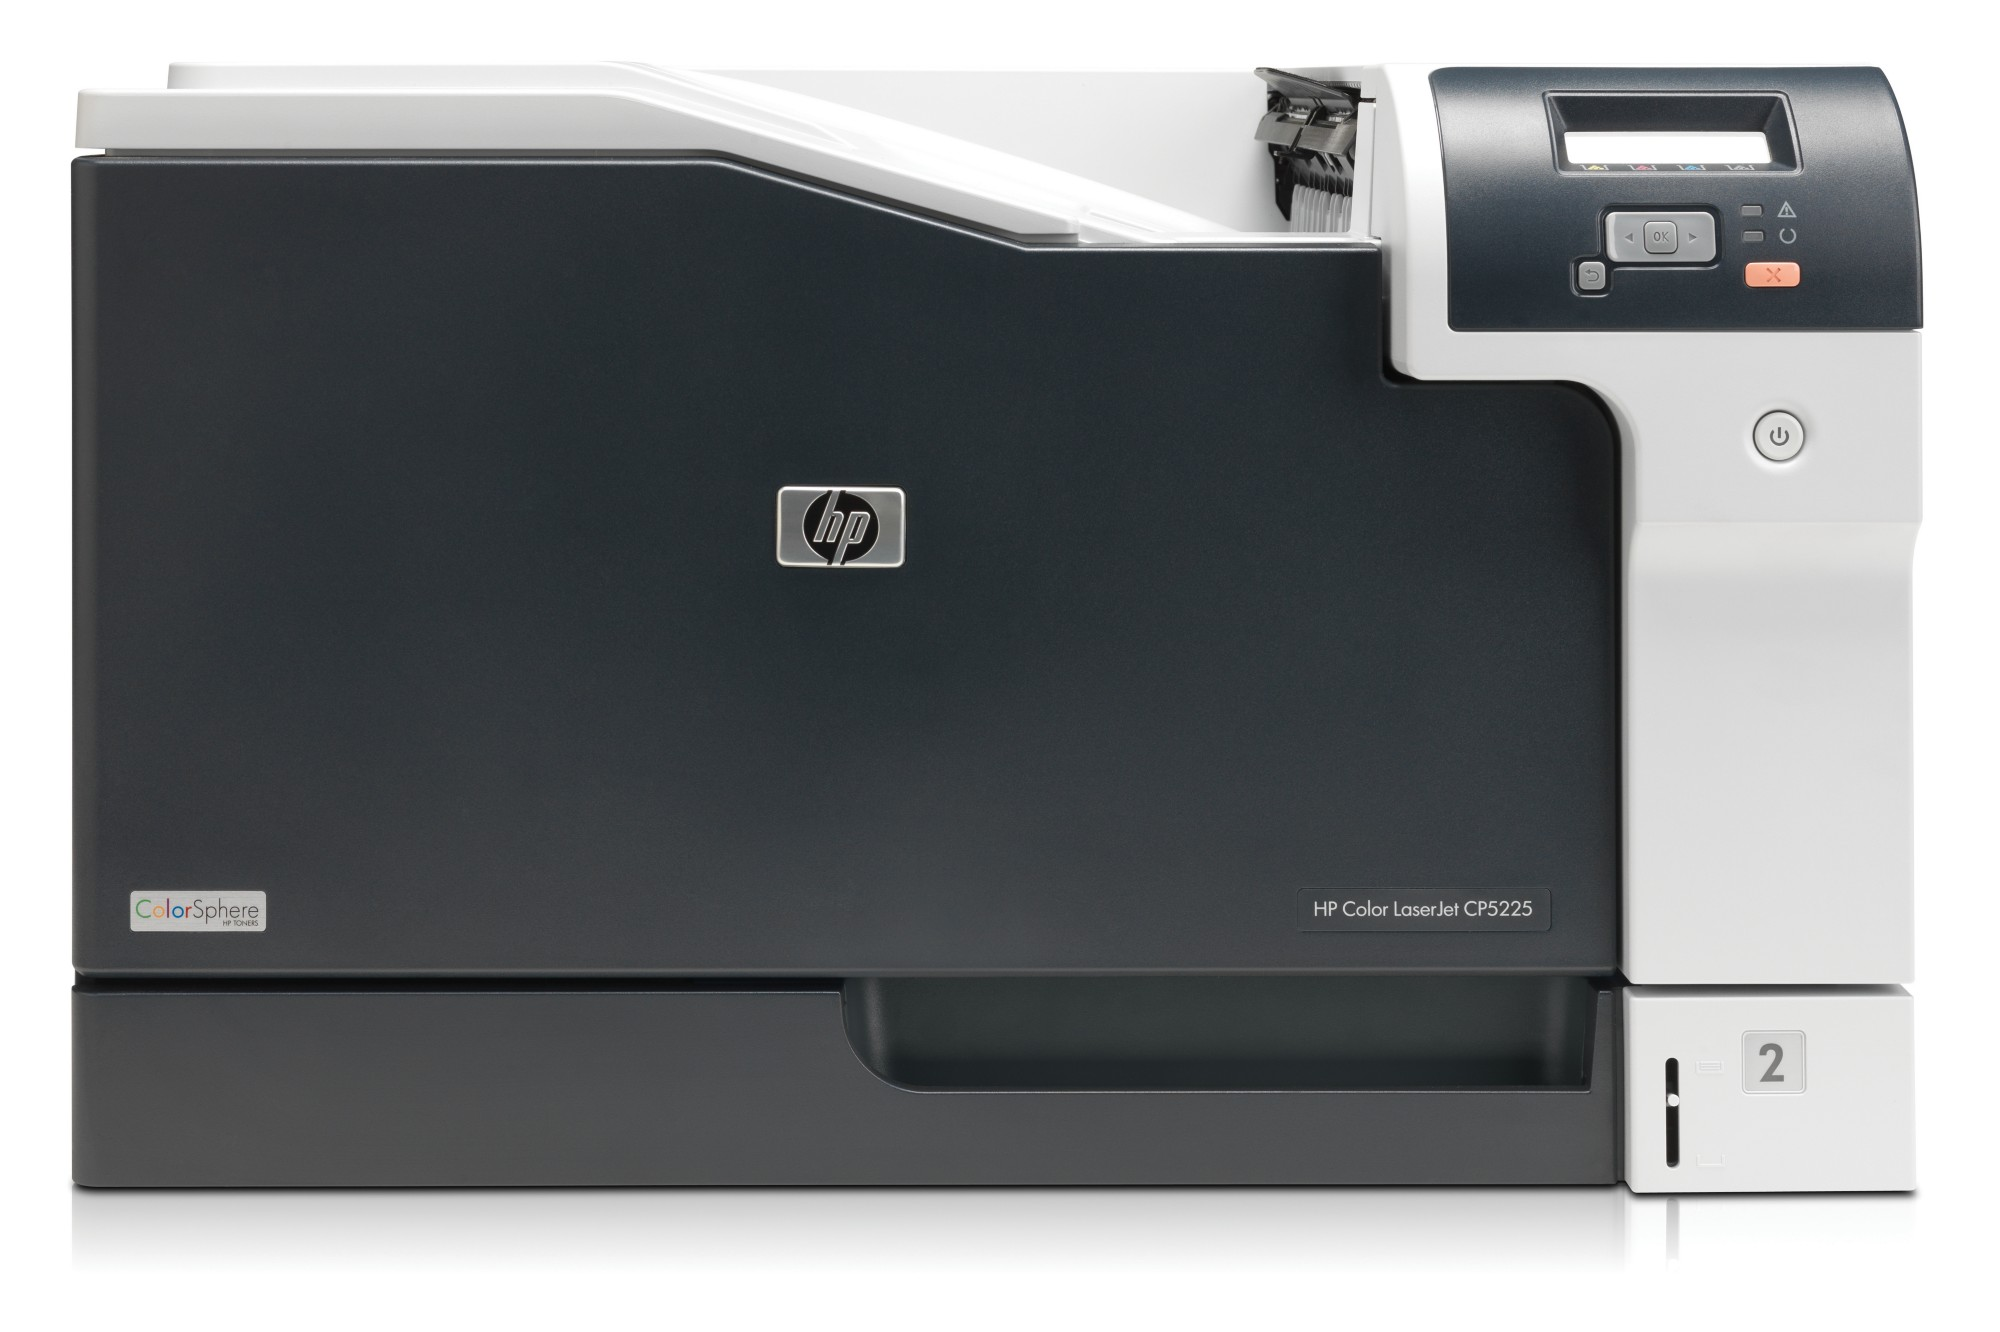 A3 Photo Printing Hp Laserjet Color Professional Cp5225n Printer Colour 600 X 600 Dpi A3